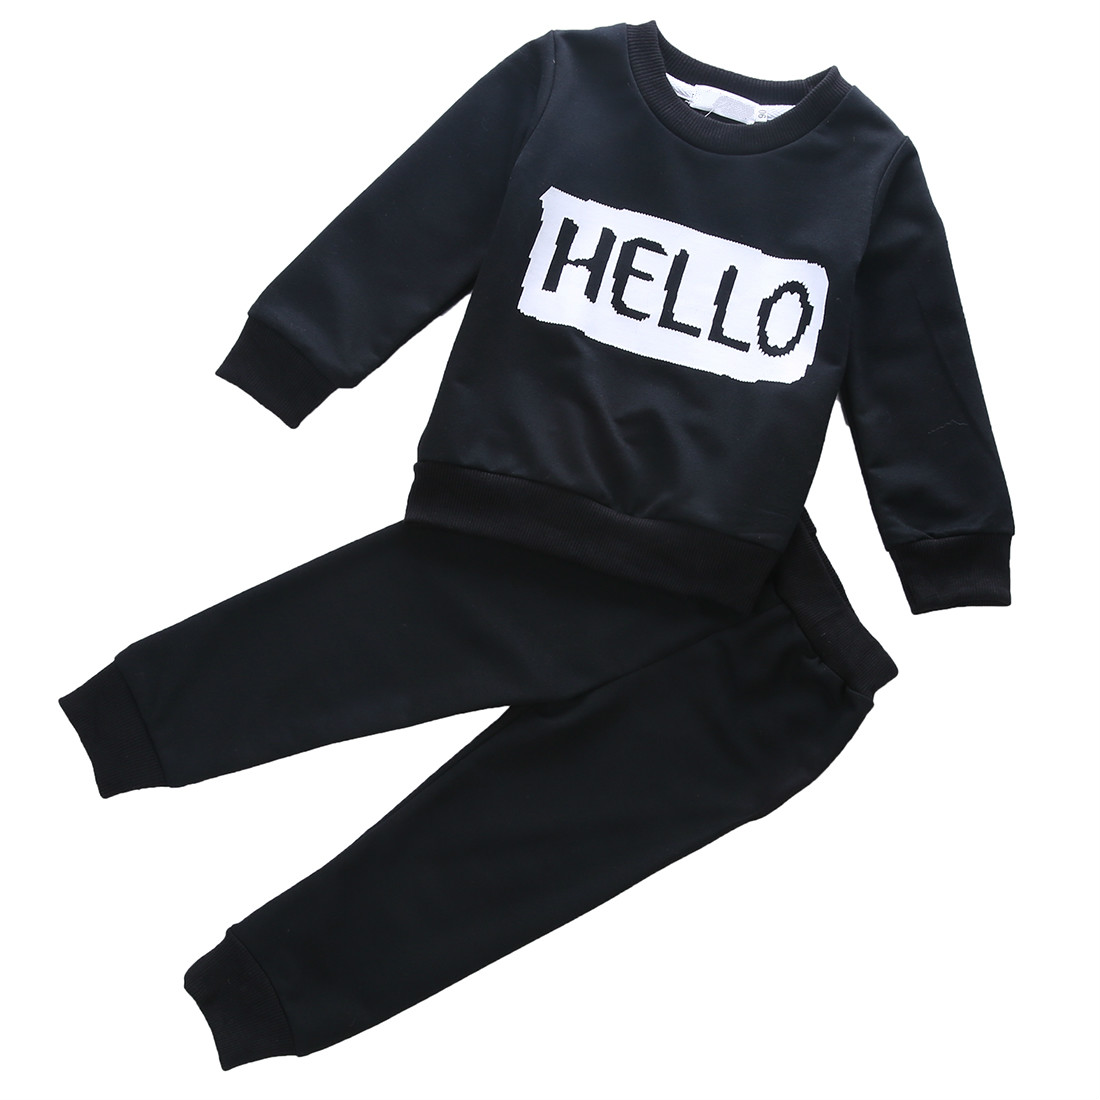 Winter Kid Clothes Sets 2Pcs Baby Toddler Kids Girls Boys Long Sleeve Letter T-shirt Tops Pants Casual Outfits Clothes Set 1-6Y t shirt tops cotton denim pants 2pcs clothes sets newborn toddler kid infant baby boy clothes outfit set au 2016 new boys